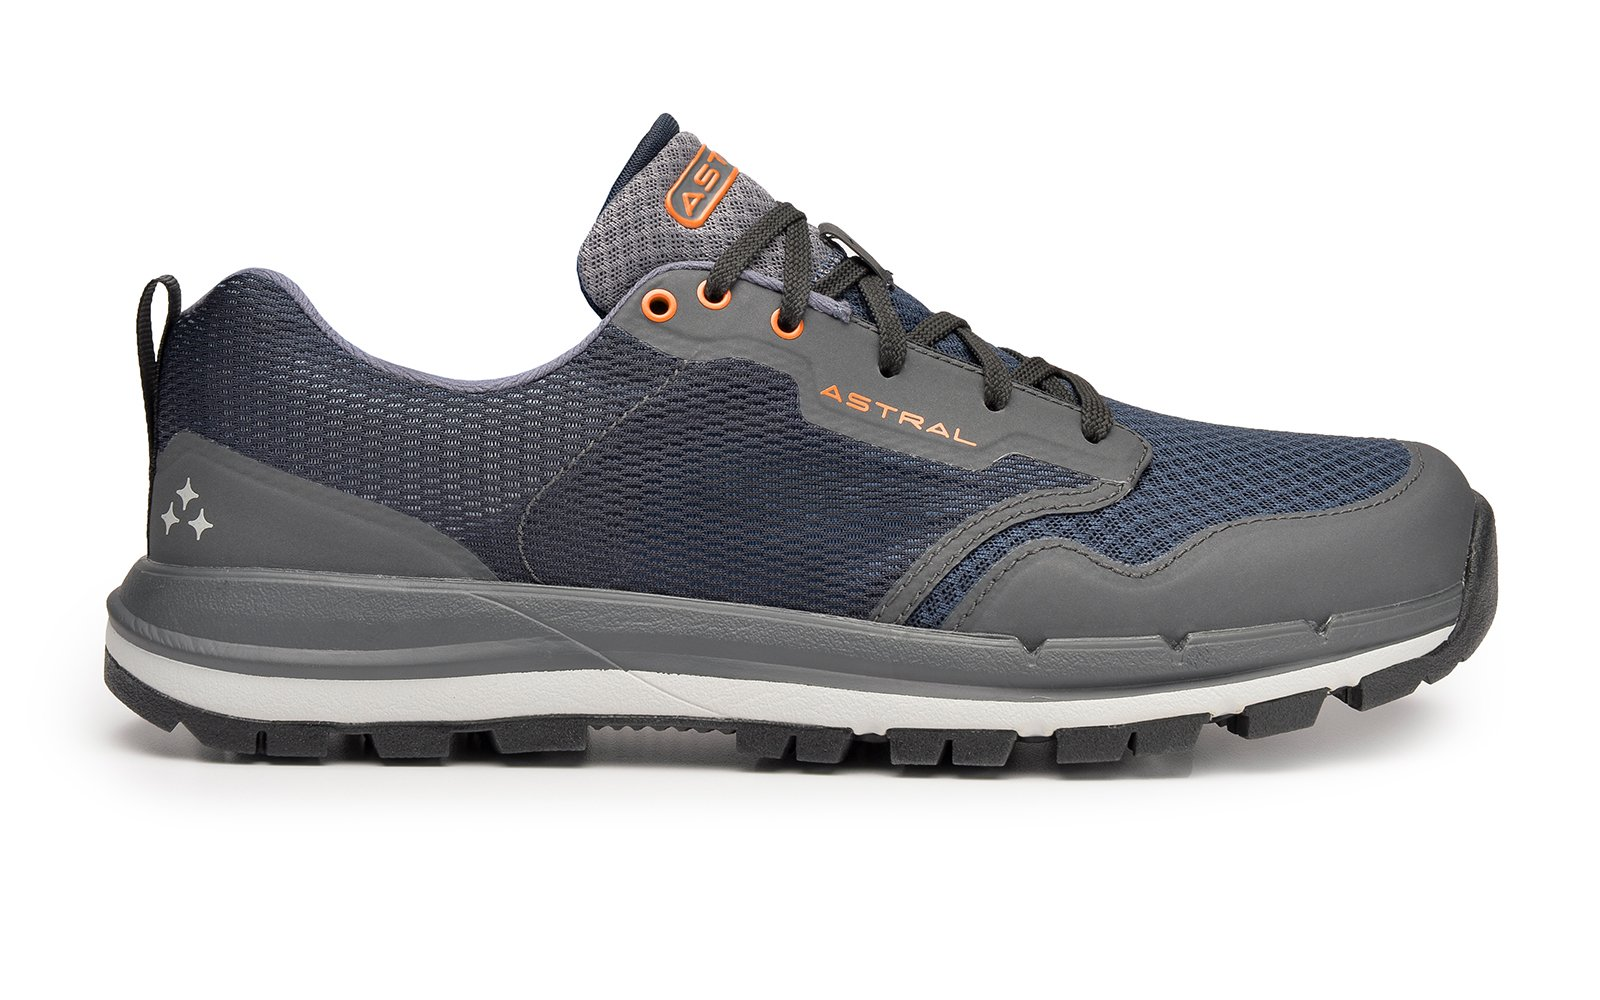 Astral TR1 Mesh M's - Storm Navy